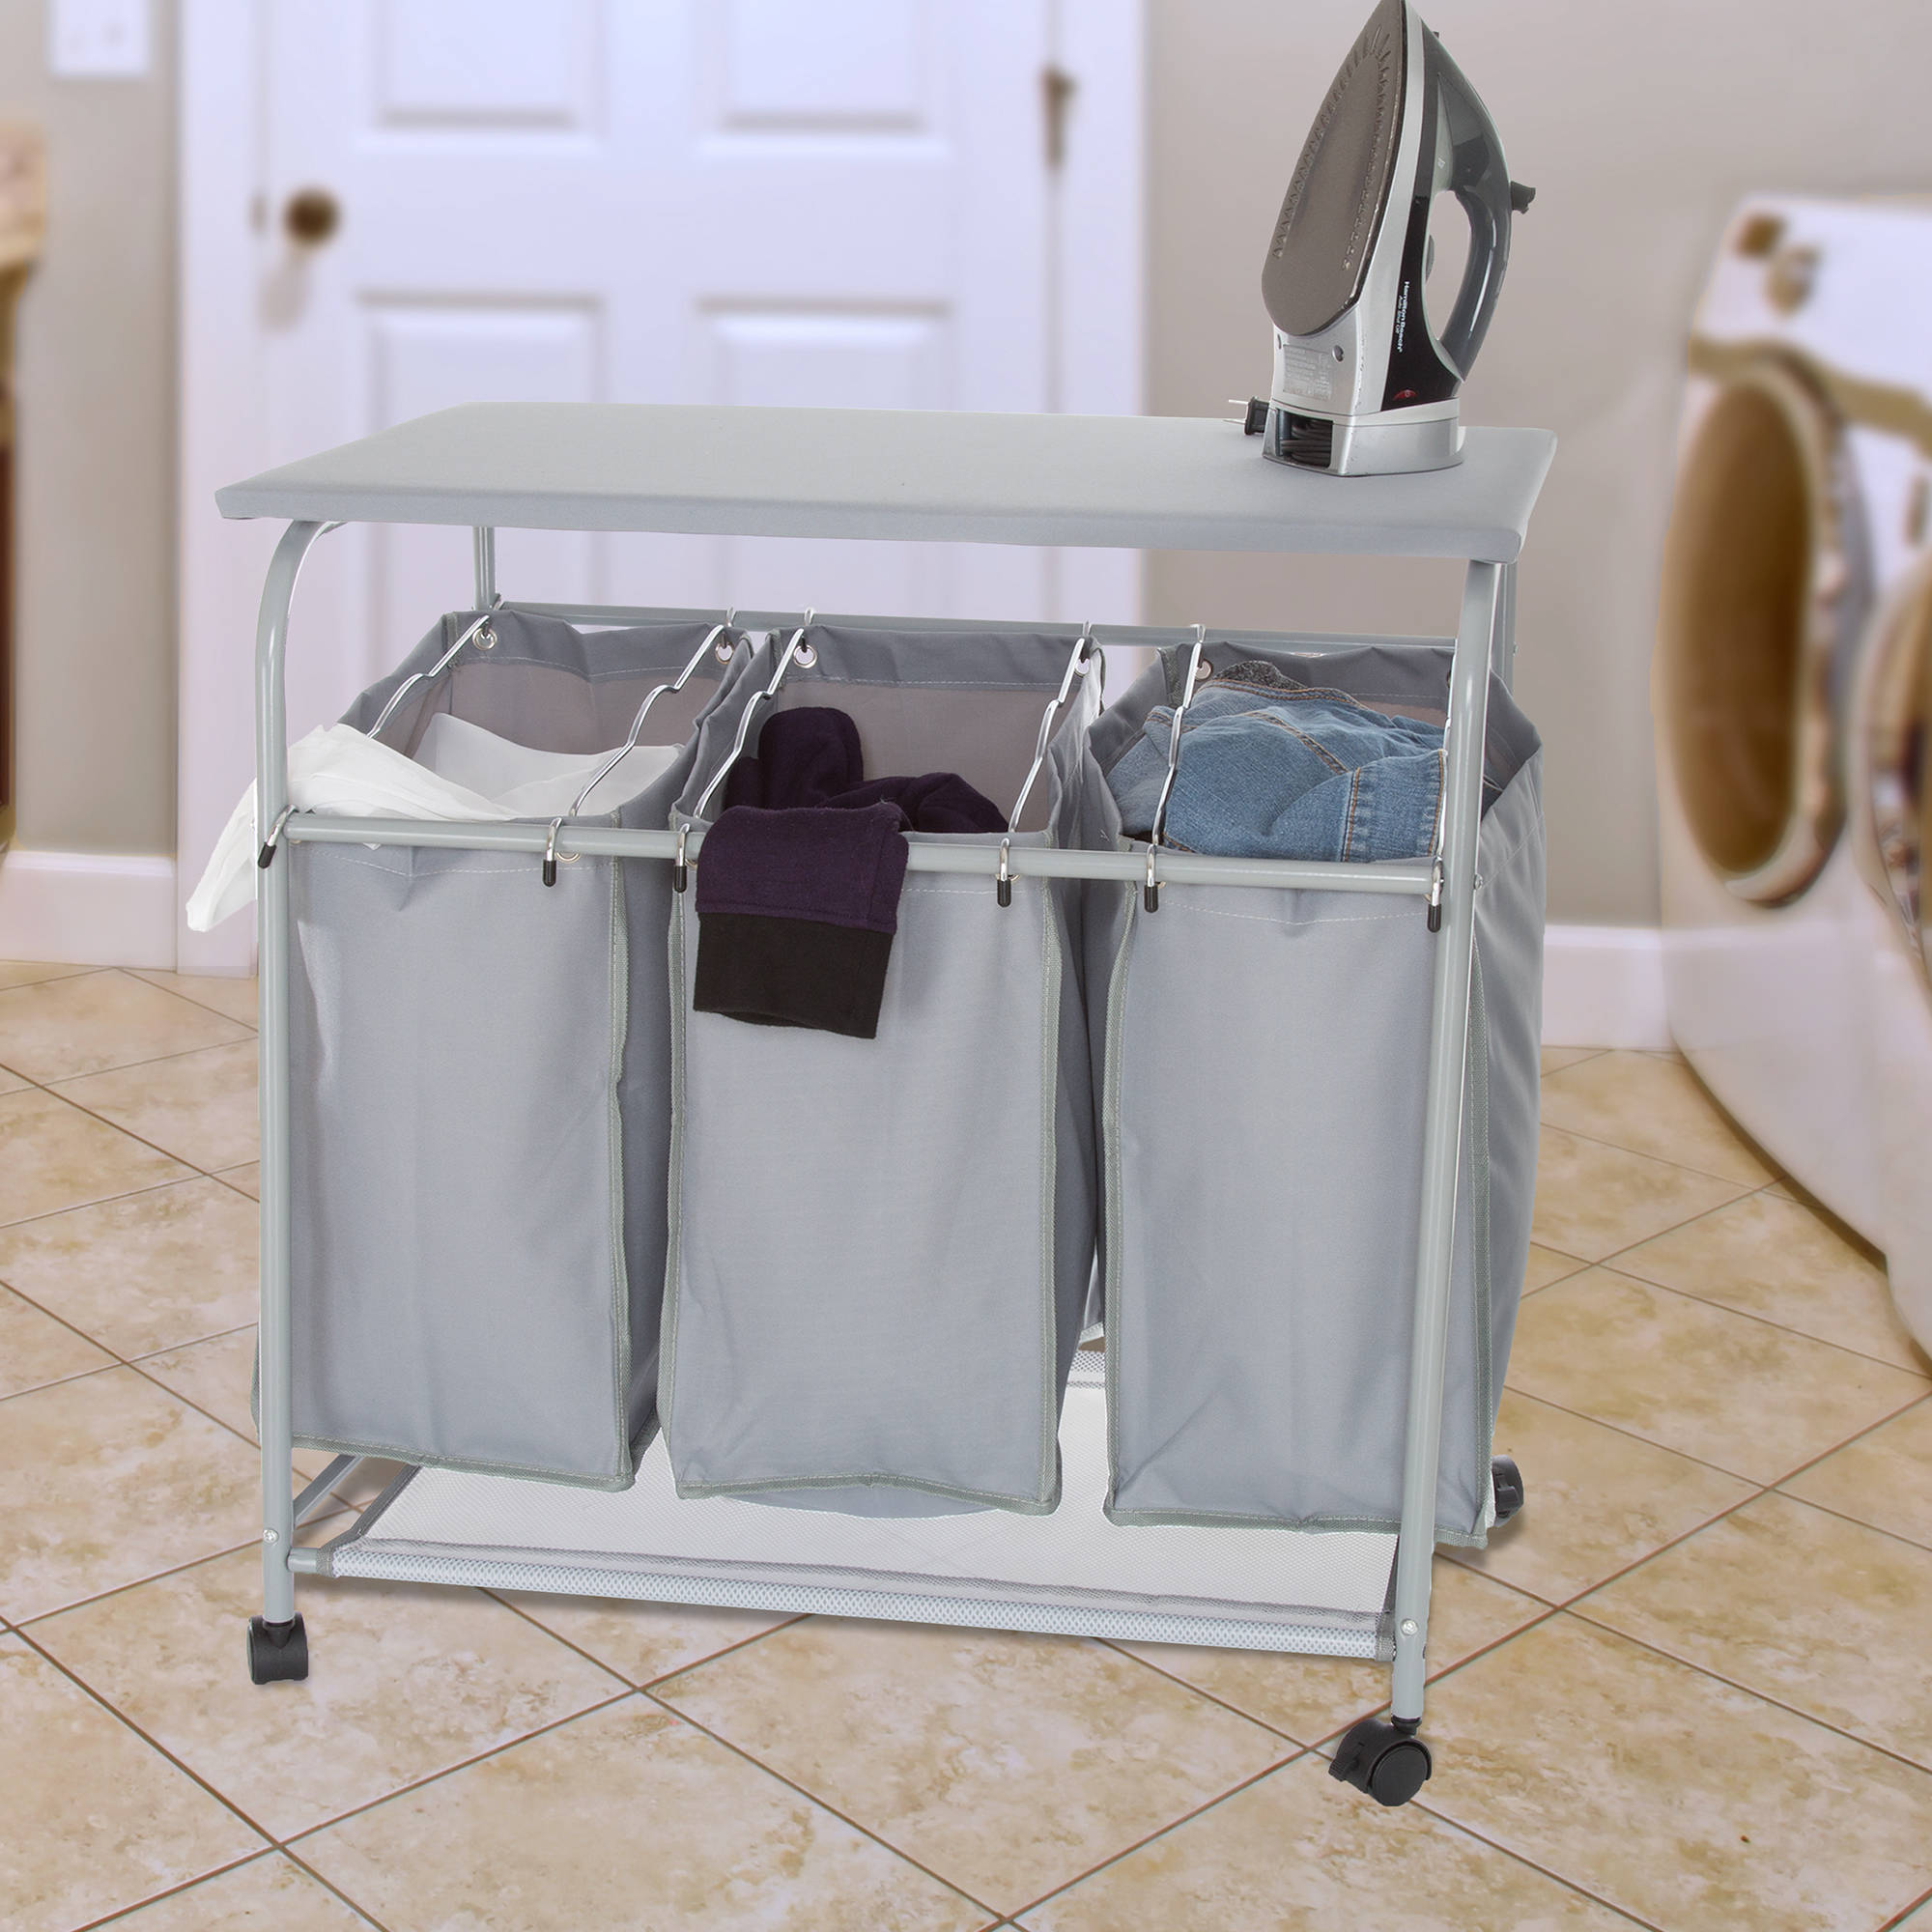 Lavish Home Rolling 3 Bin Laundry Sorter and Ironing Station, Grey